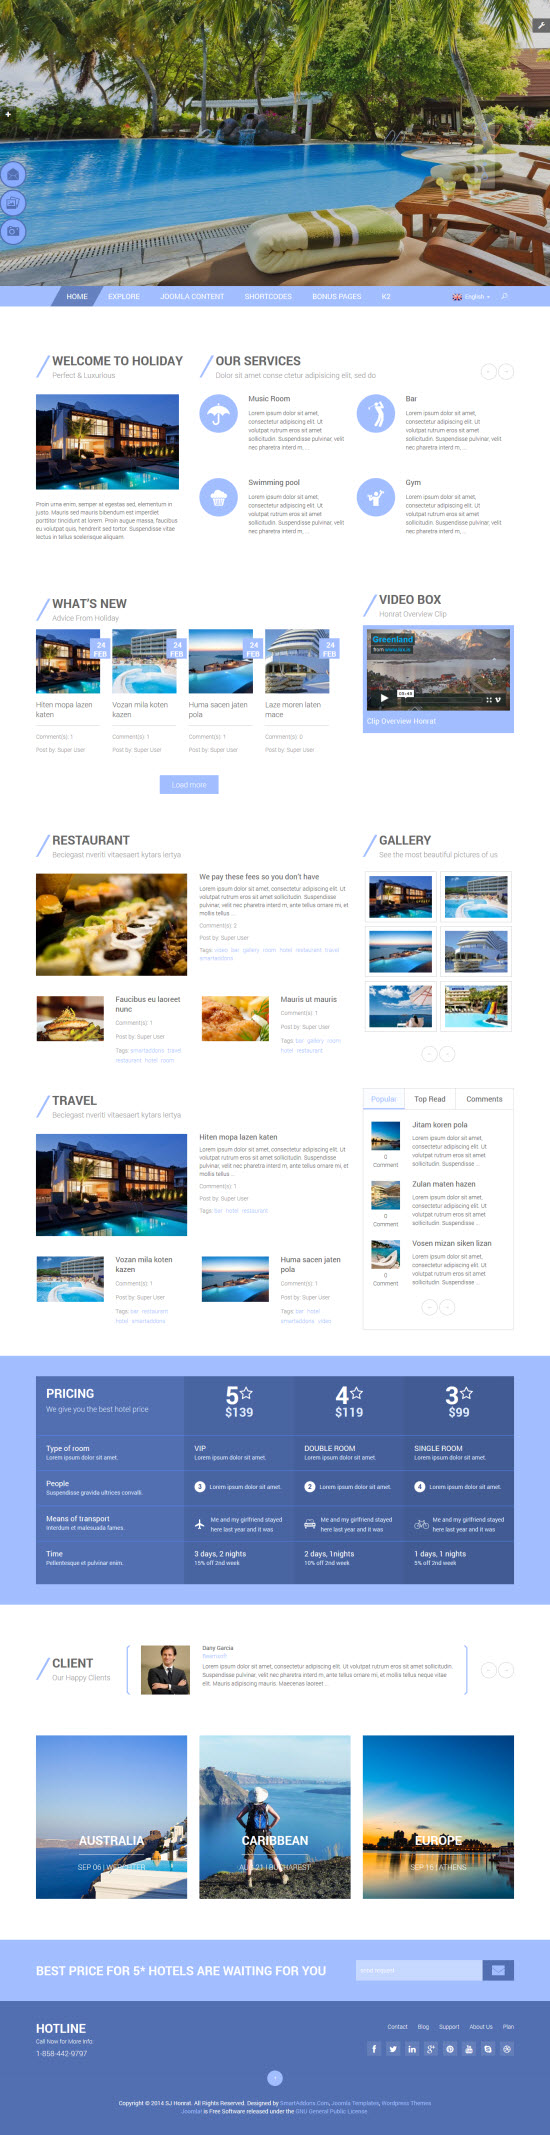 SJ Honrat - Responsive Joomla Hotel, resort & spa Template - 02-index2.jpg